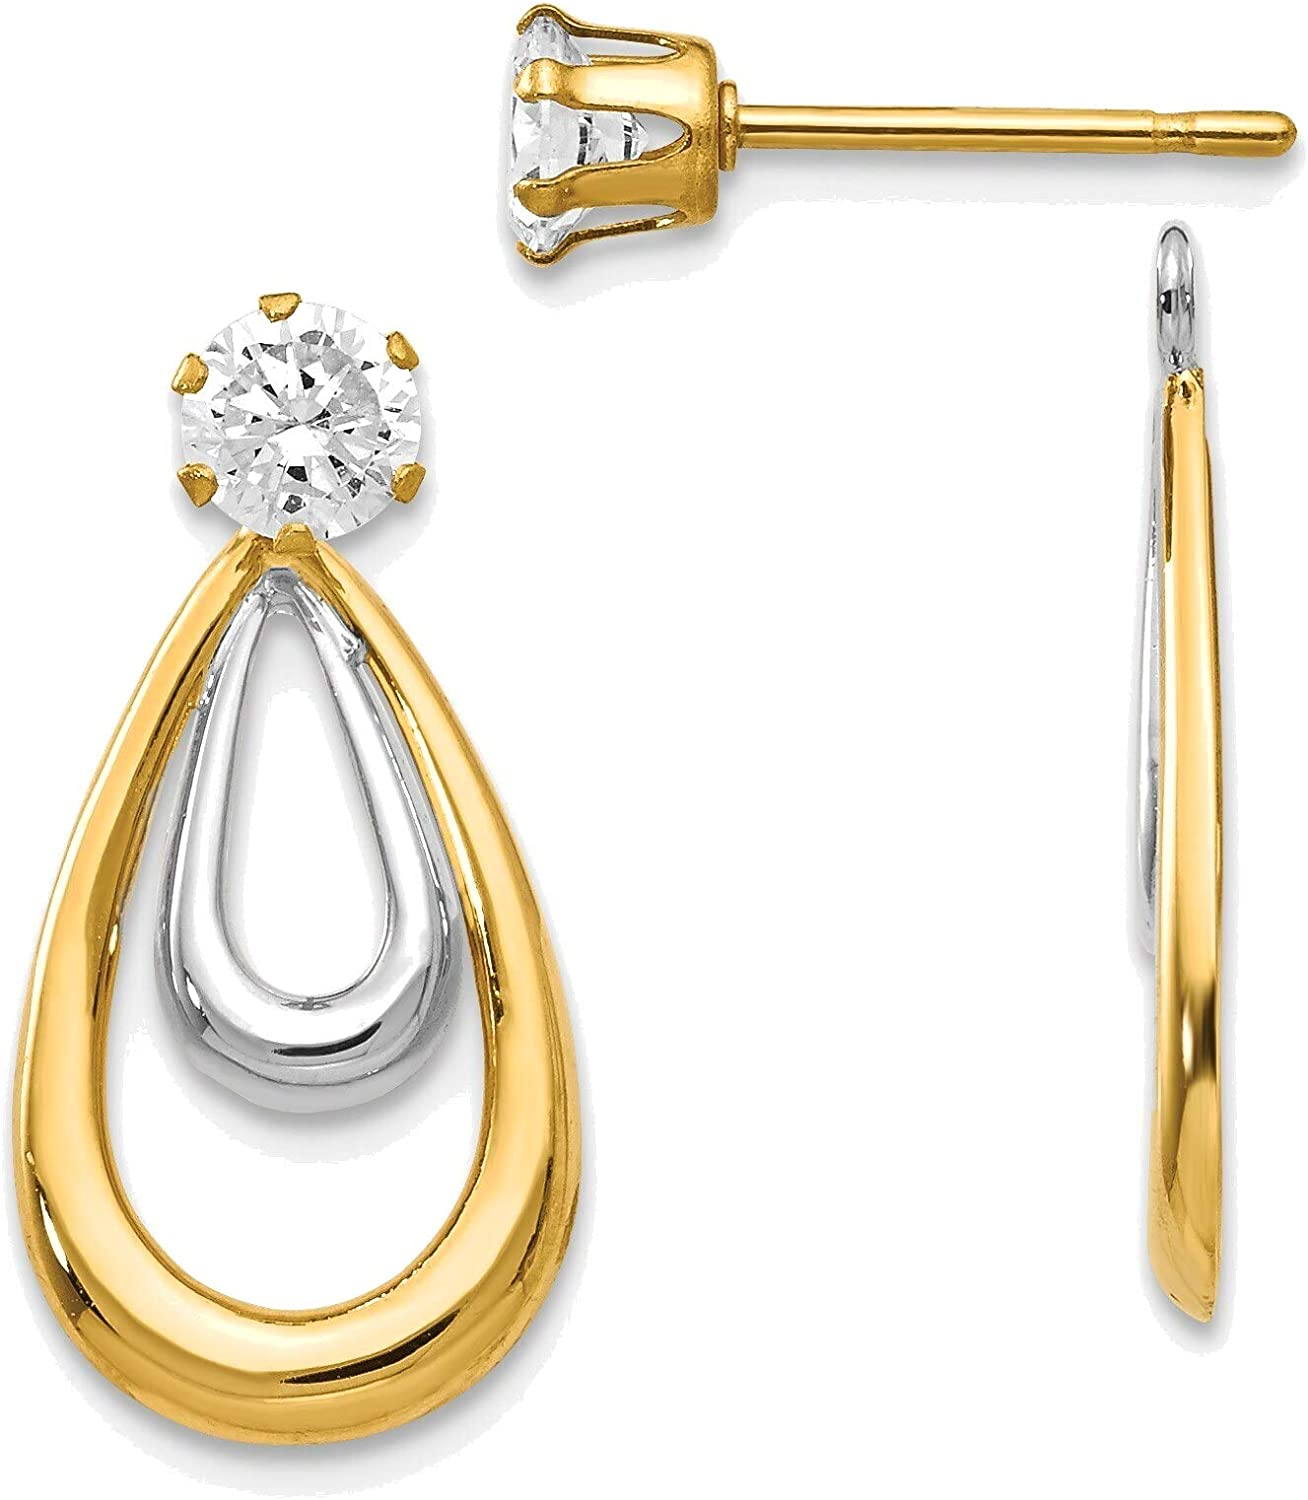 Two Tone Polished with CZ Stud Earring Jackets in 14K Yellow and White Gold